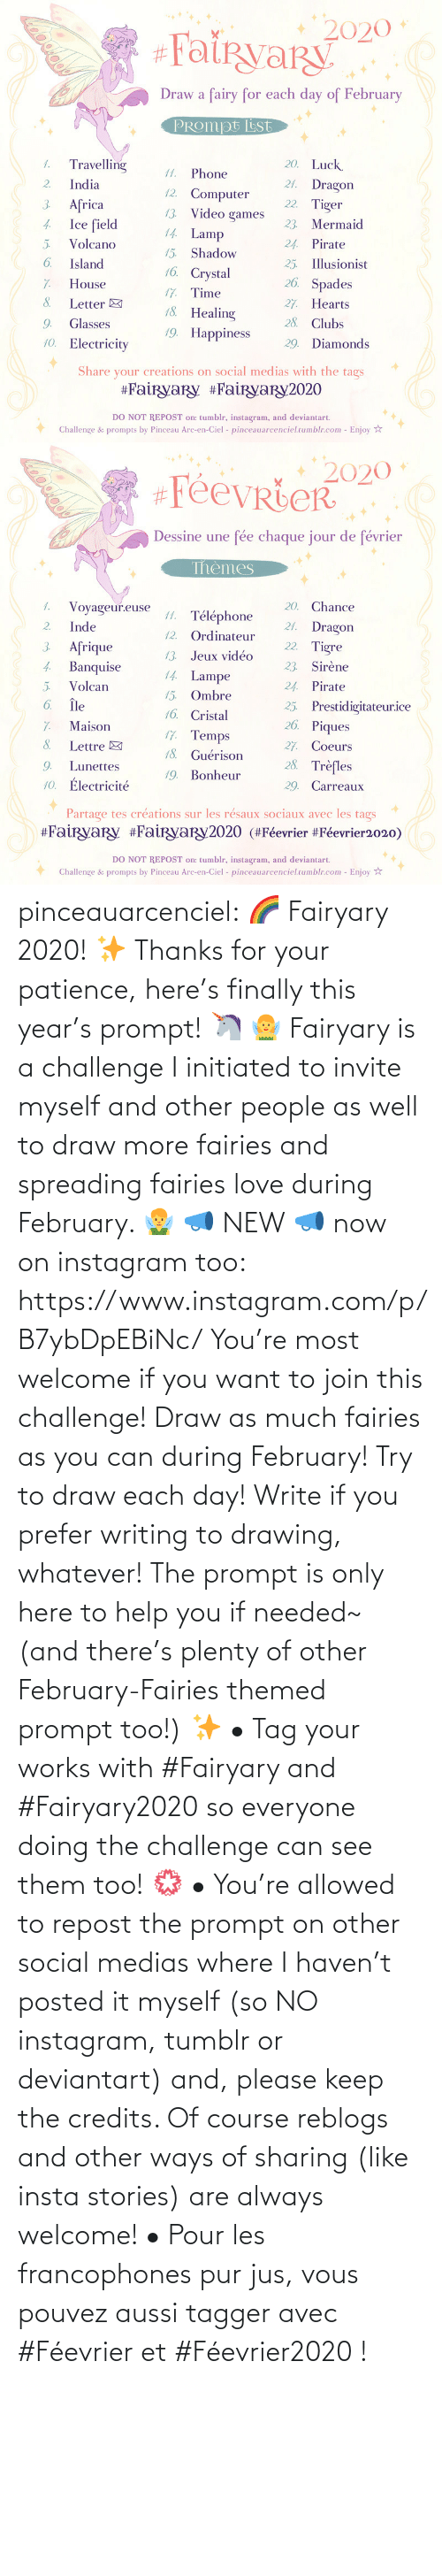 challenge: pinceauarcenciel: 🌈 Fairyary 2020! ✨ Thanks for your patience, here's finally this year's prompt! 🦄 🧚‍♀️ Fairyary is a challenge I initiated to invite myself and other people as well to draw more fairies and spreading fairies love during February. 🧚‍♂️ 📣 NEW 📣 now on instagram too: https://www.instagram.com/p/B7ybDpEBiNc/ You're most welcome if you want to join this challenge! Draw as much fairies as you can during February! Try to draw each day! Write if you prefer writing to drawing, whatever! The prompt is only here to help you if needed~ (and there's plenty of other February-Fairies themed prompt too!) ✨ • Tag your works with #Fairyary and #Fairyary2020 so everyone doing the challenge can see them too! 💮 • You're allowed to repost the prompt on other social medias where I haven't posted it myself (so NO instagram, tumblr or deviantart) and, please keep the credits. Of course reblogs and other ways of sharing (like insta stories) are always welcome!